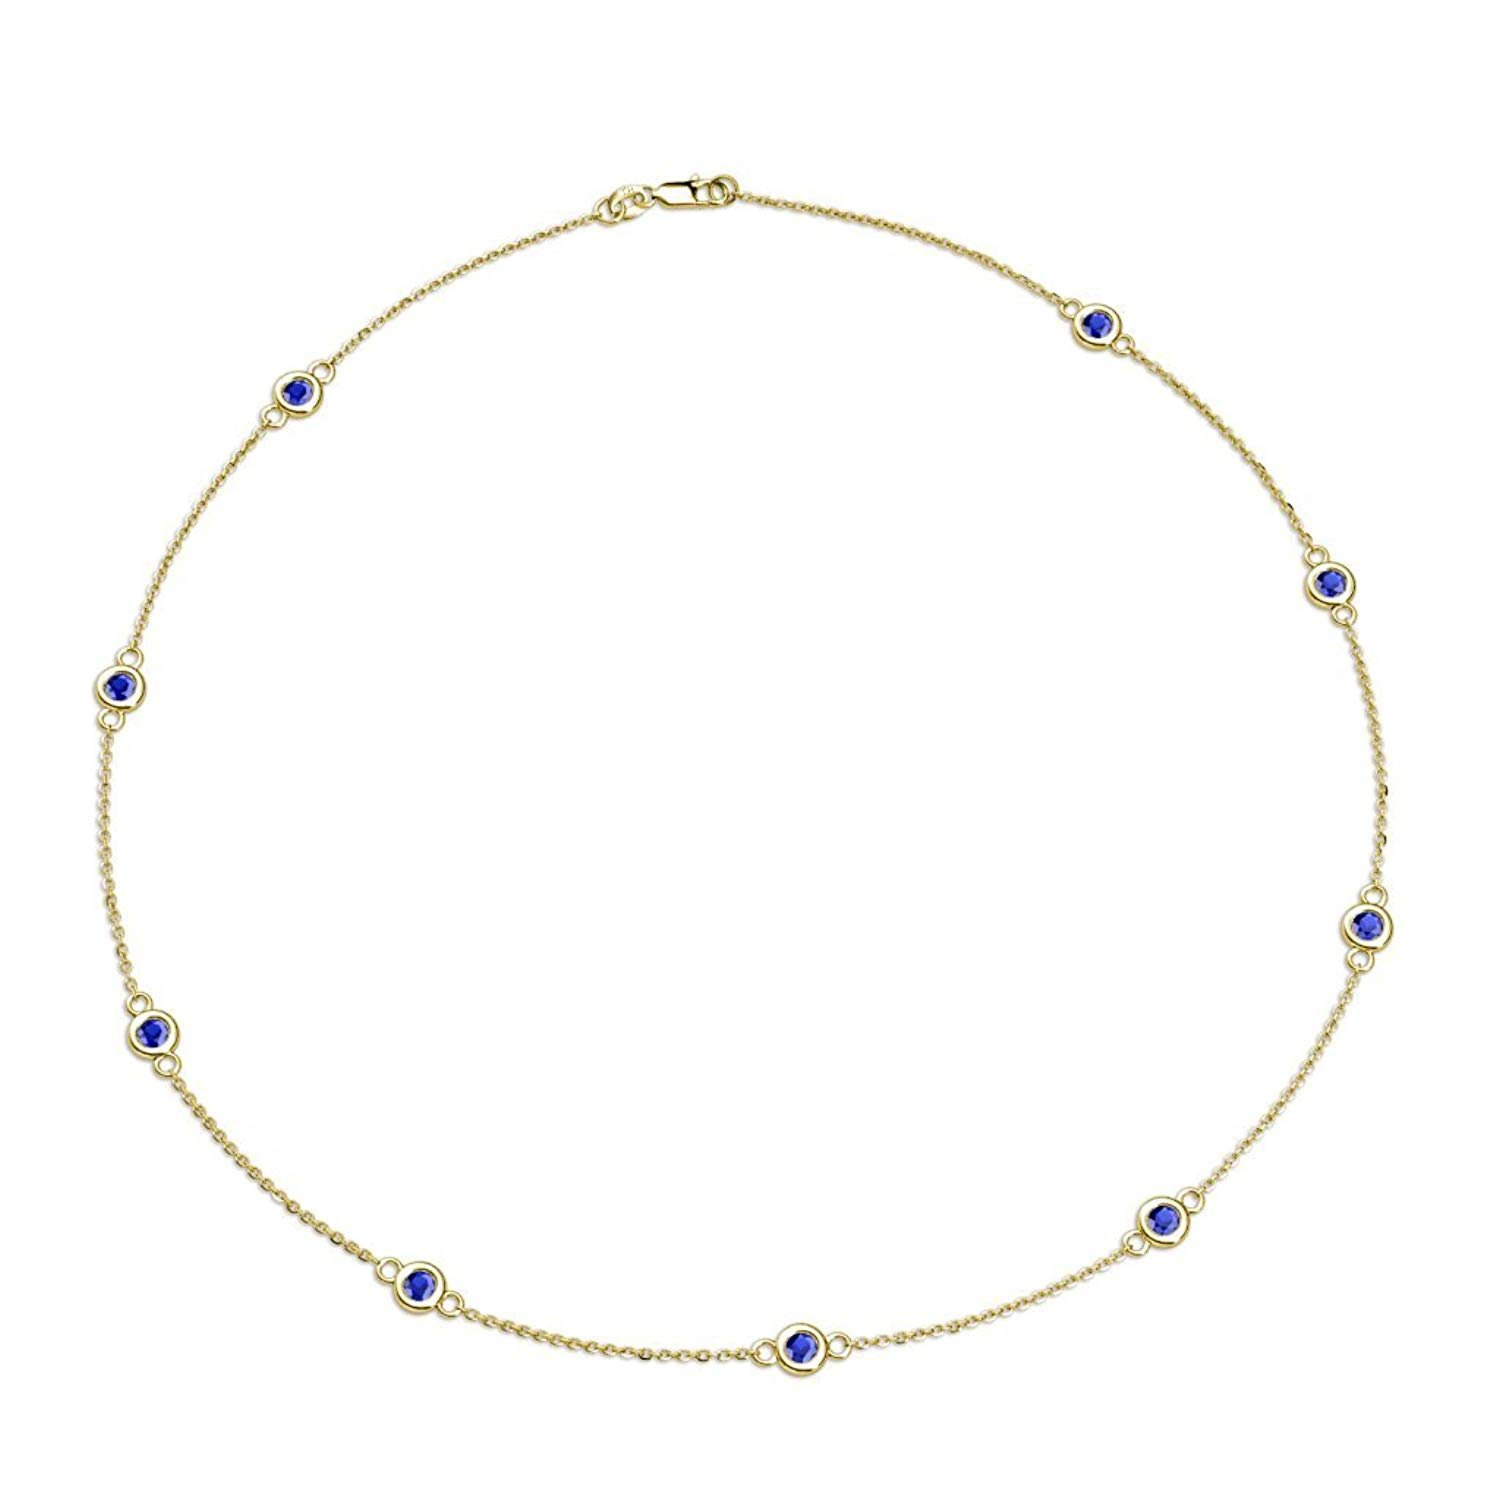 Blue Sapphire 9 Station Necklace 1.42 cttw in 14K Yellow Gold by TriJewels